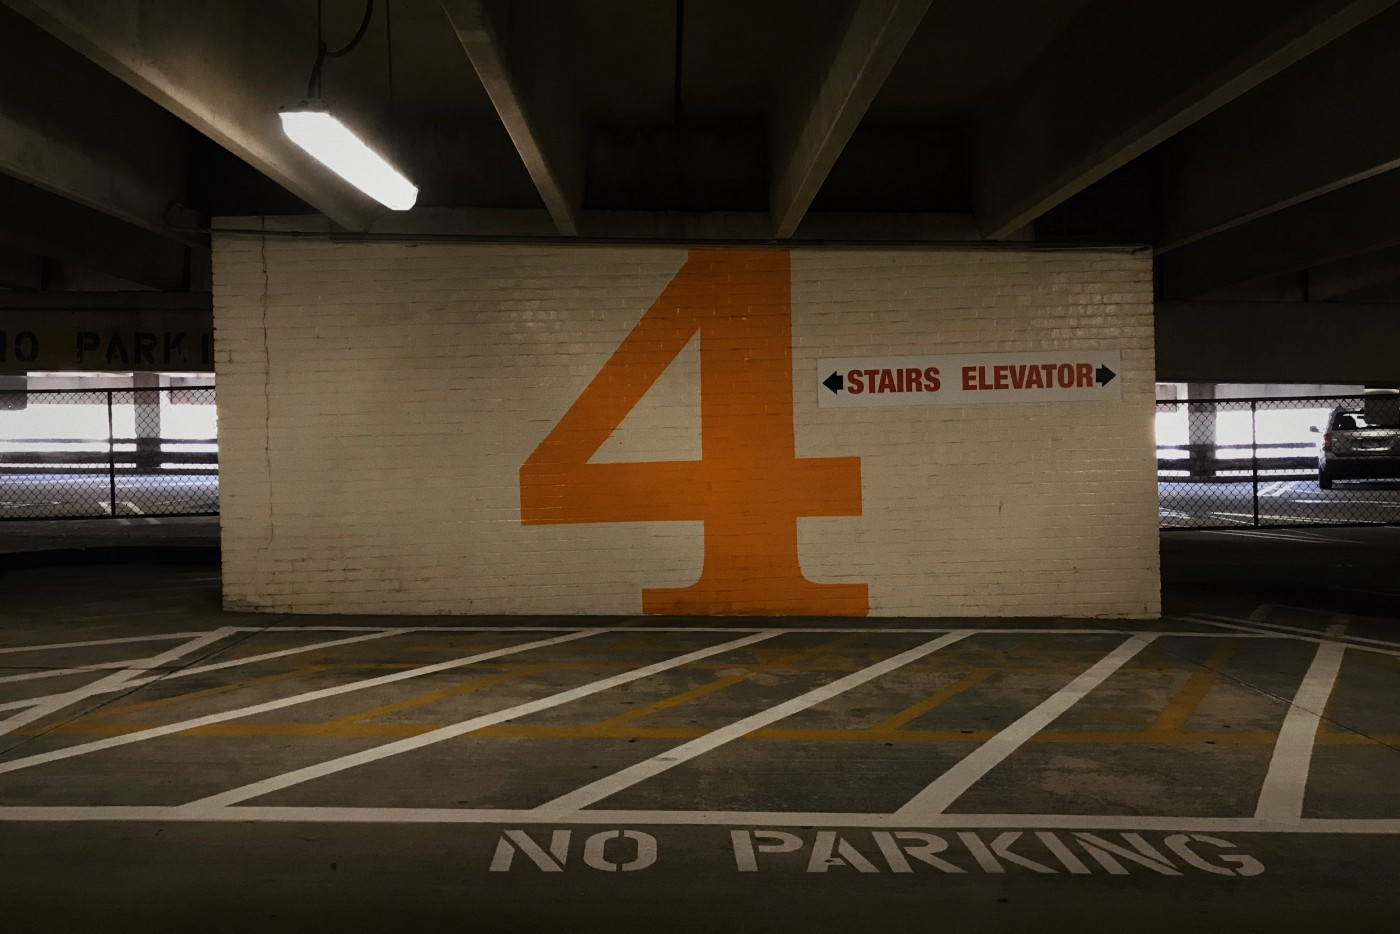 Image of a giant number 4 in a parking garage. Image Jordan Graff